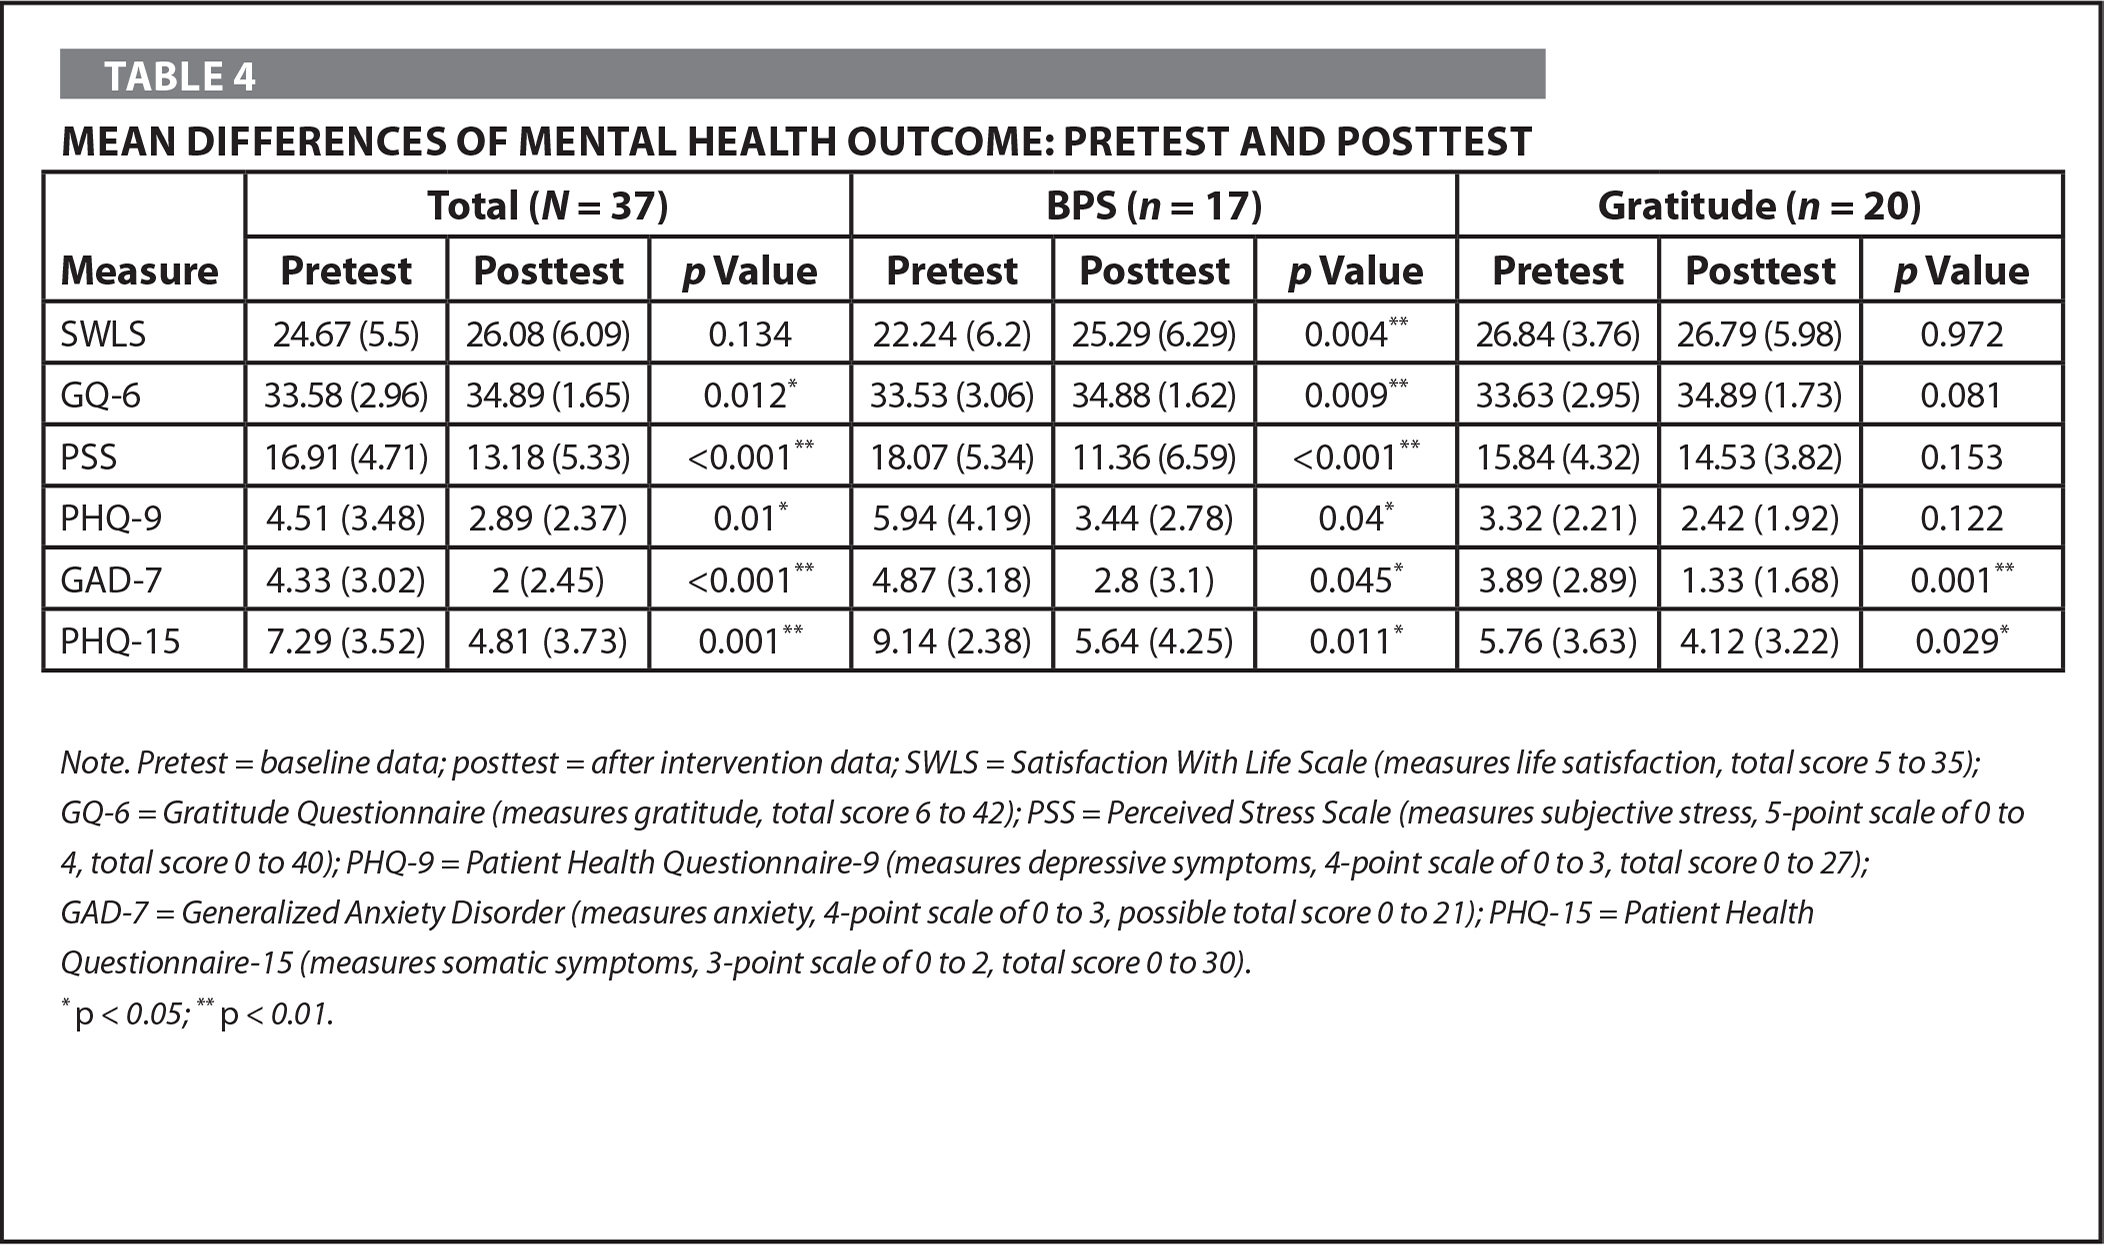 Mean Differences of Mental Health Outcome: Pretest and Posttest